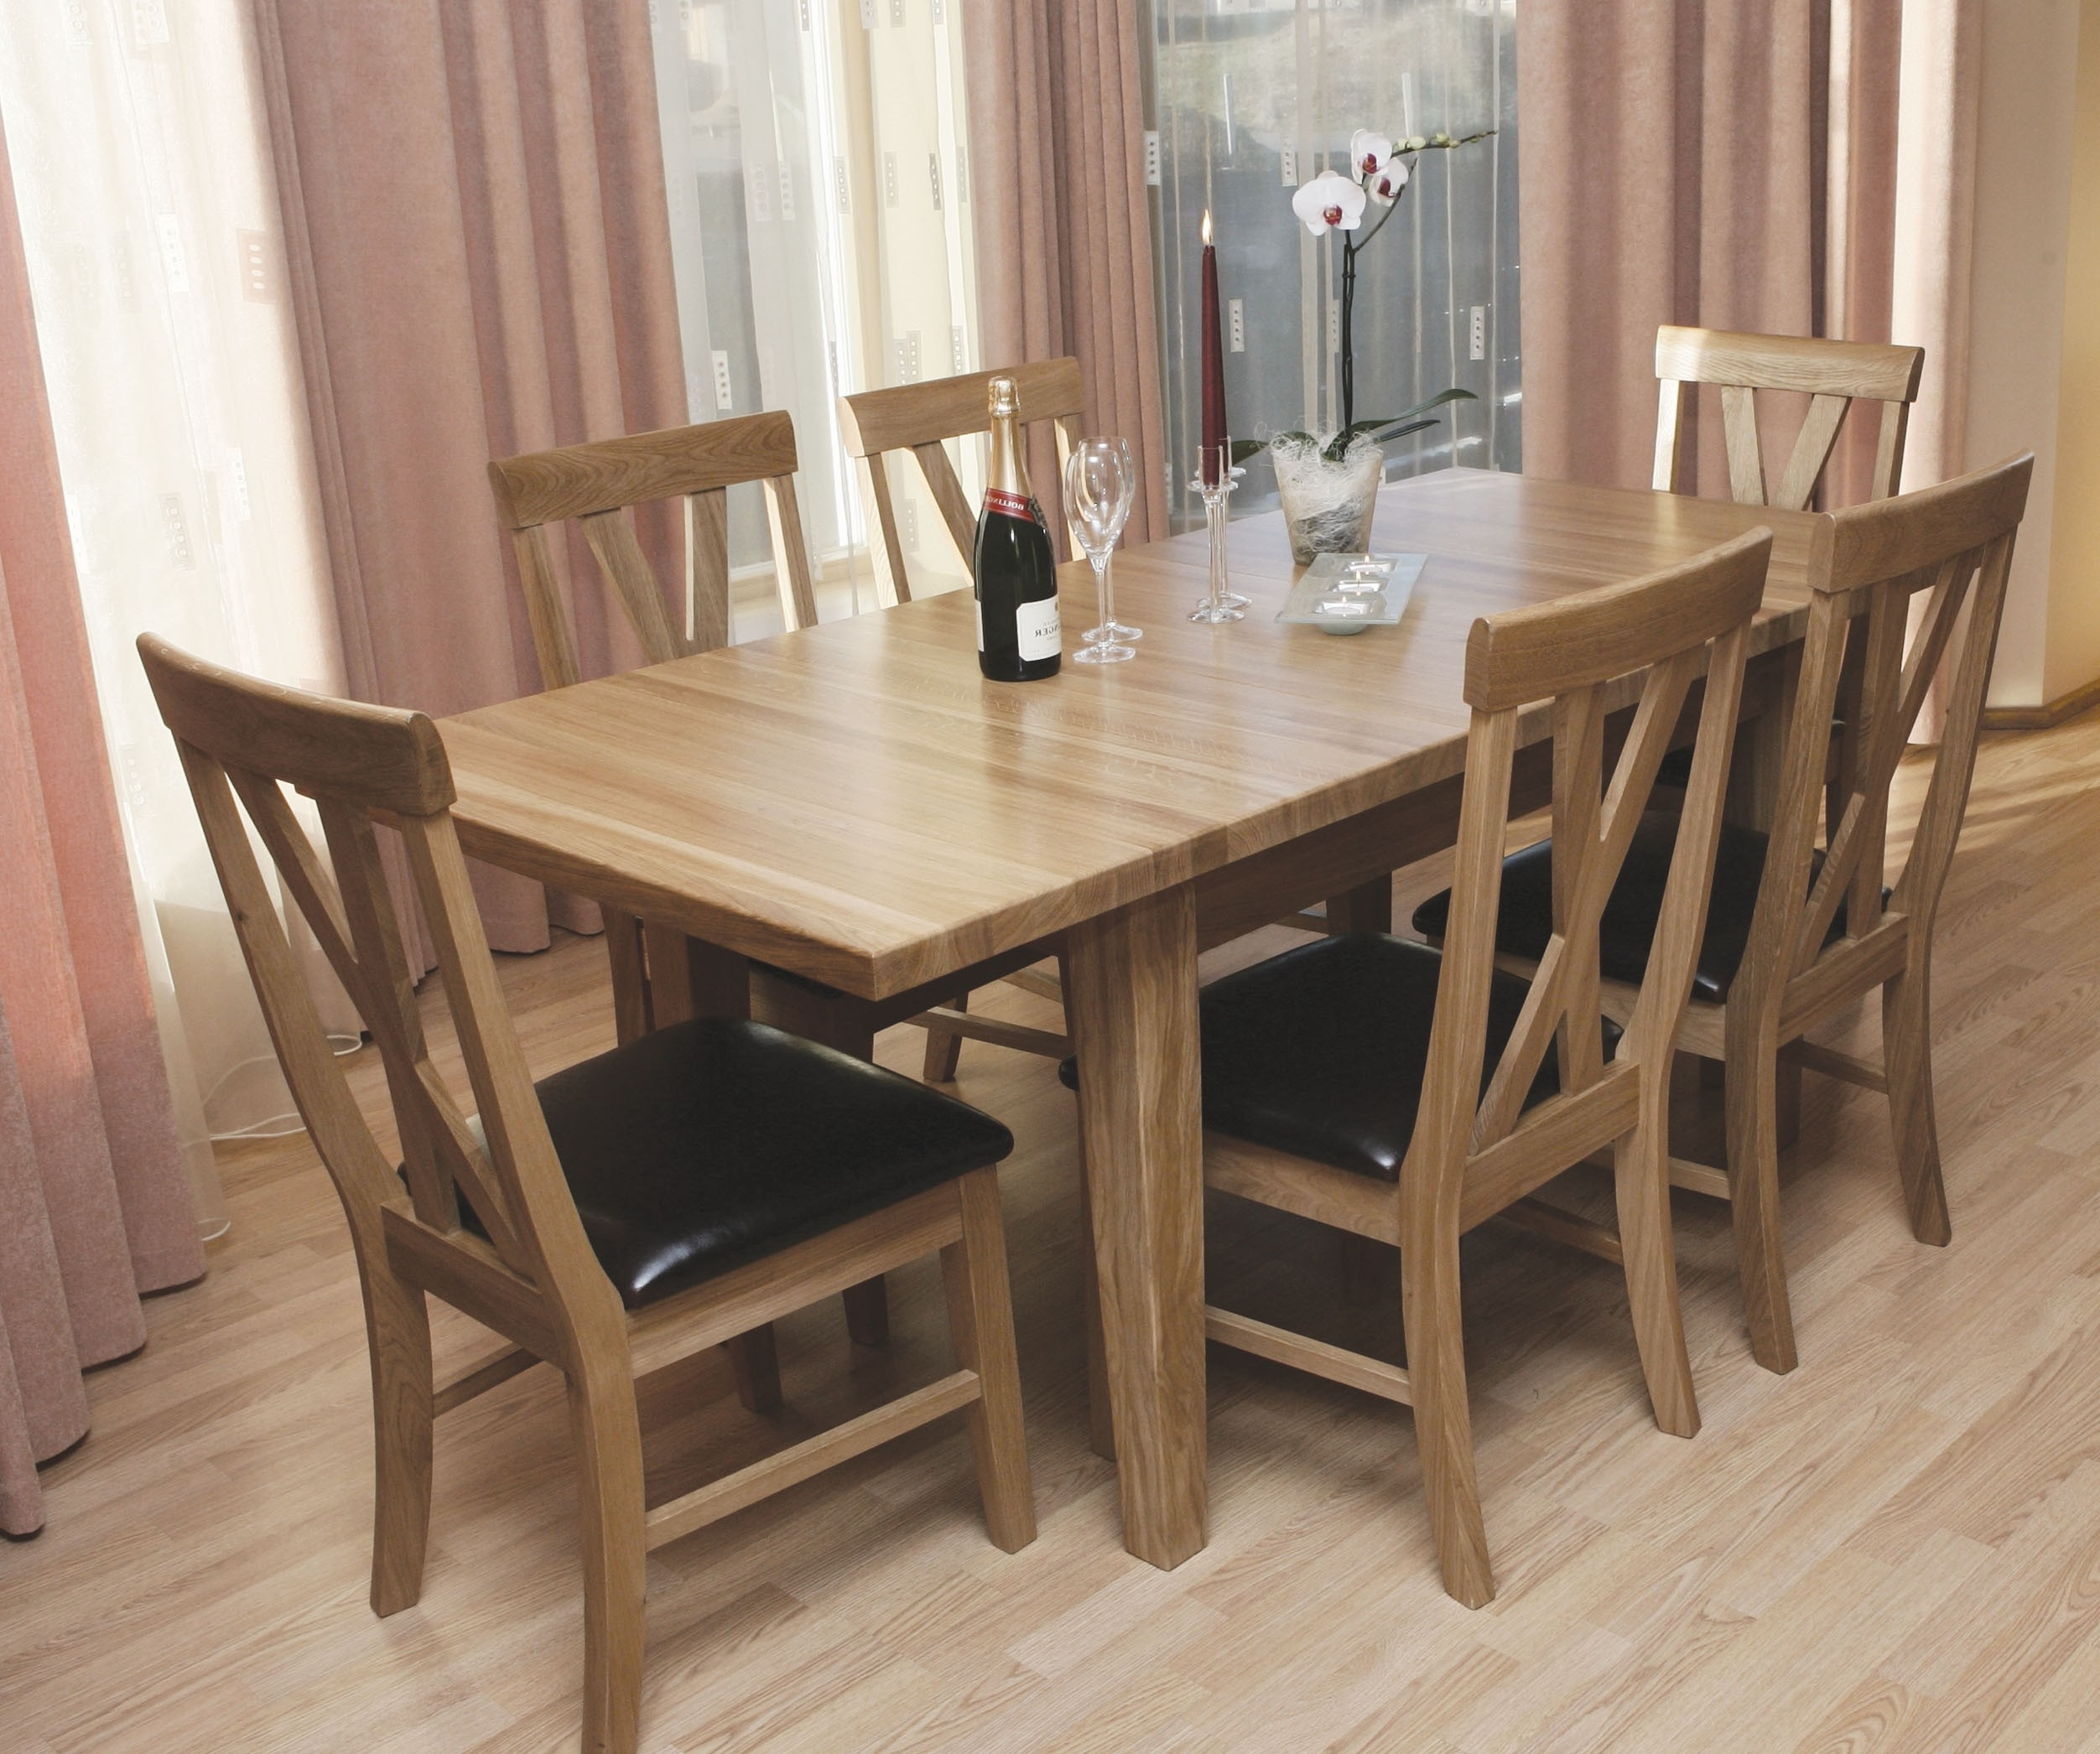 Famous Tch Warwick 6 Seat Dining Table & Chairs Set Solid Oak – Furniture Within 6 Seat Dining Table Sets (View 8 of 25)